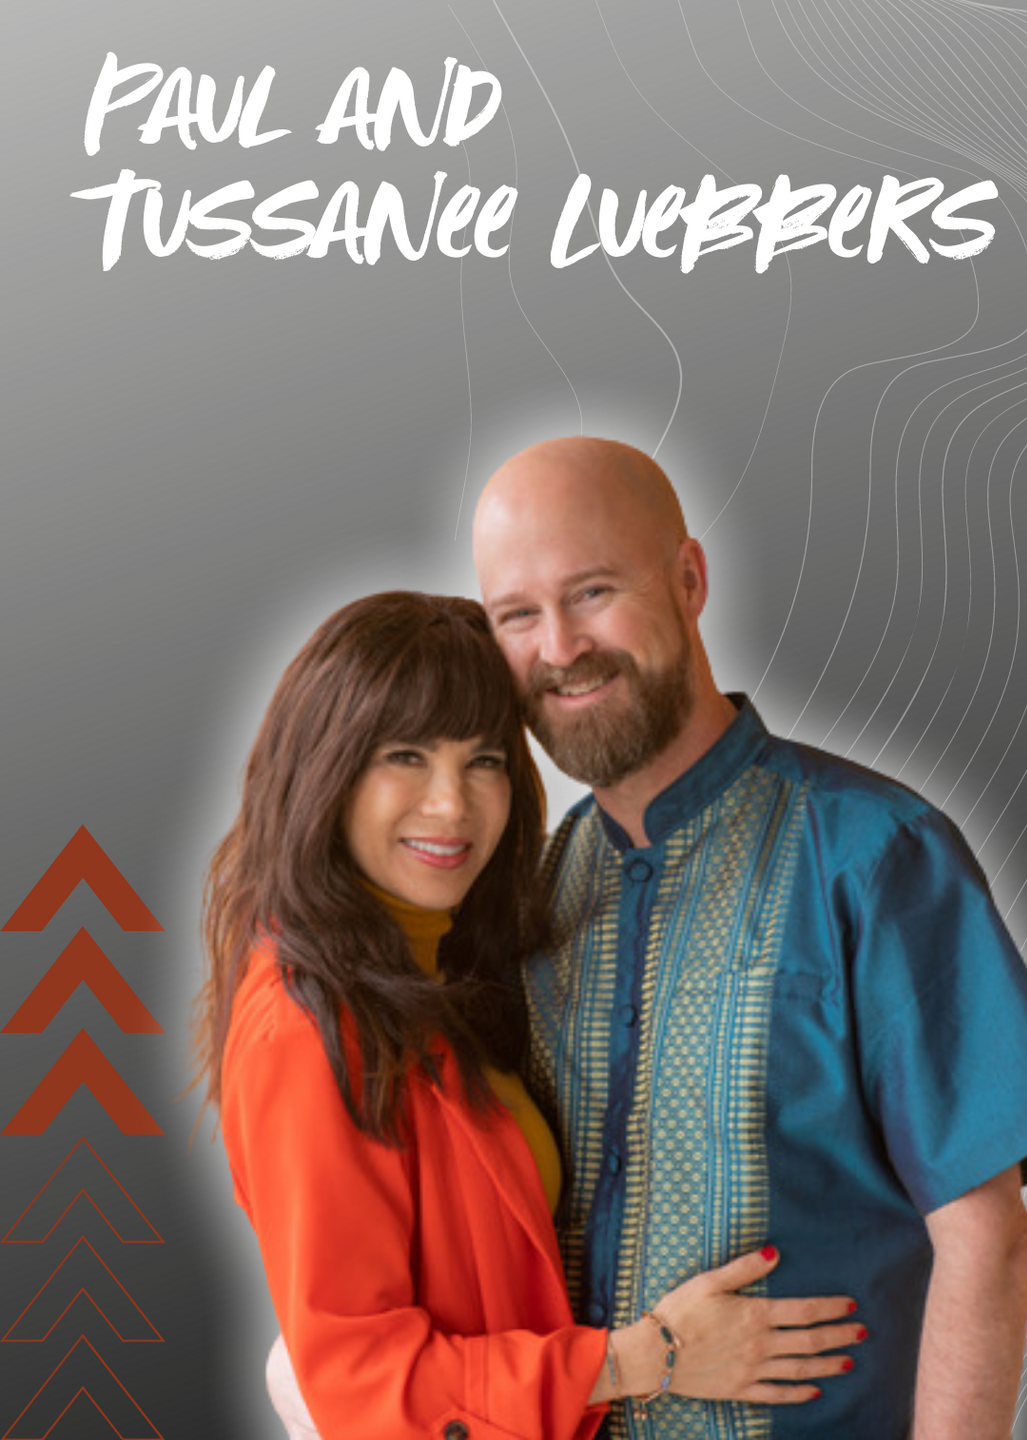 Paul Luebbers, Tussanee Luebbers, Lashcast Podcast, Spa Strong